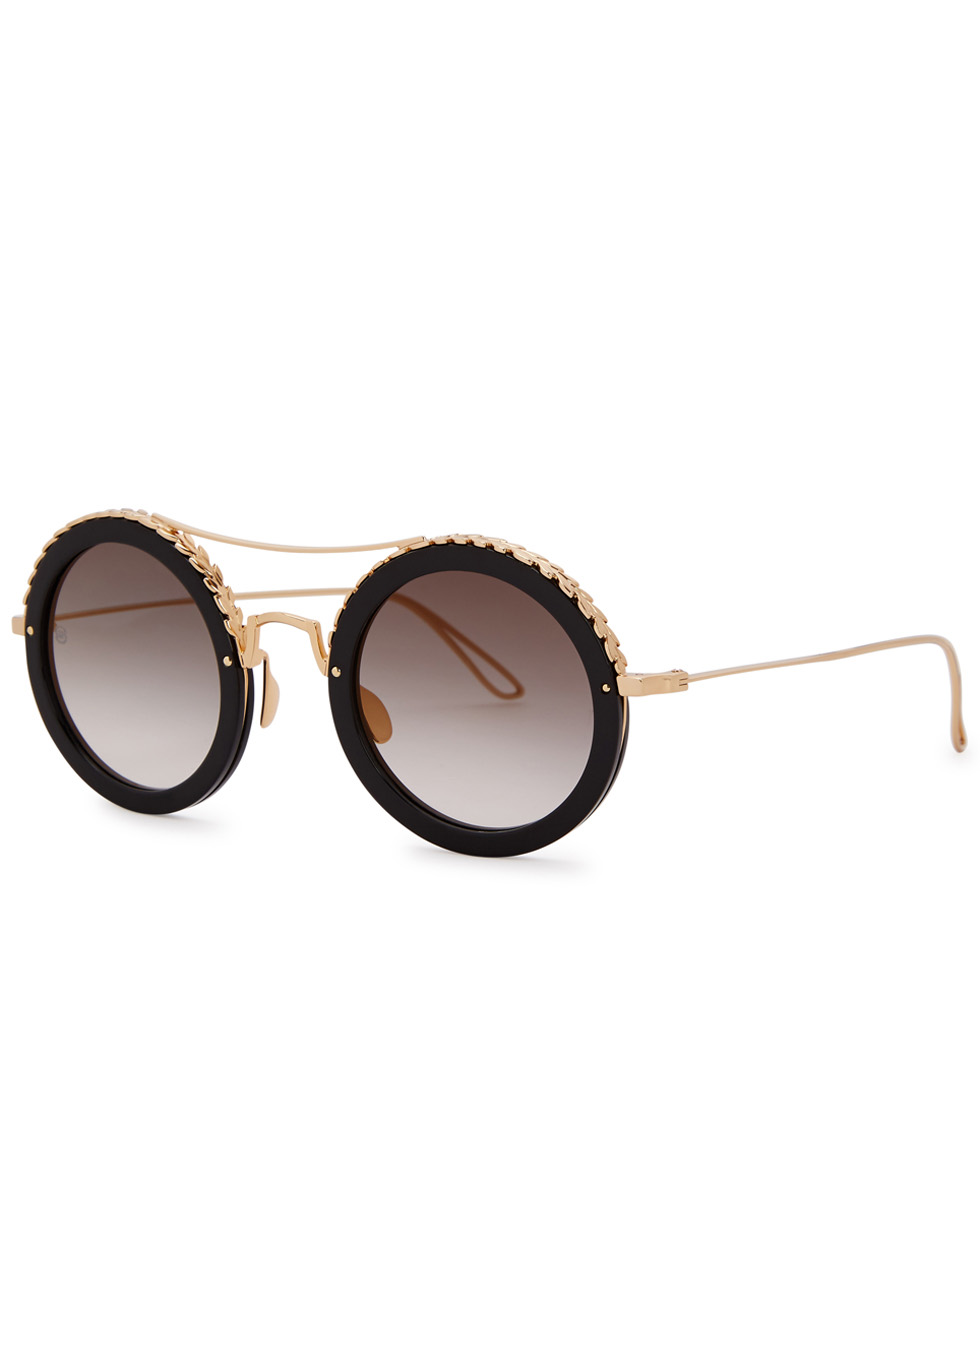 Gold-plated round-frame sunglasses - Elie Saab